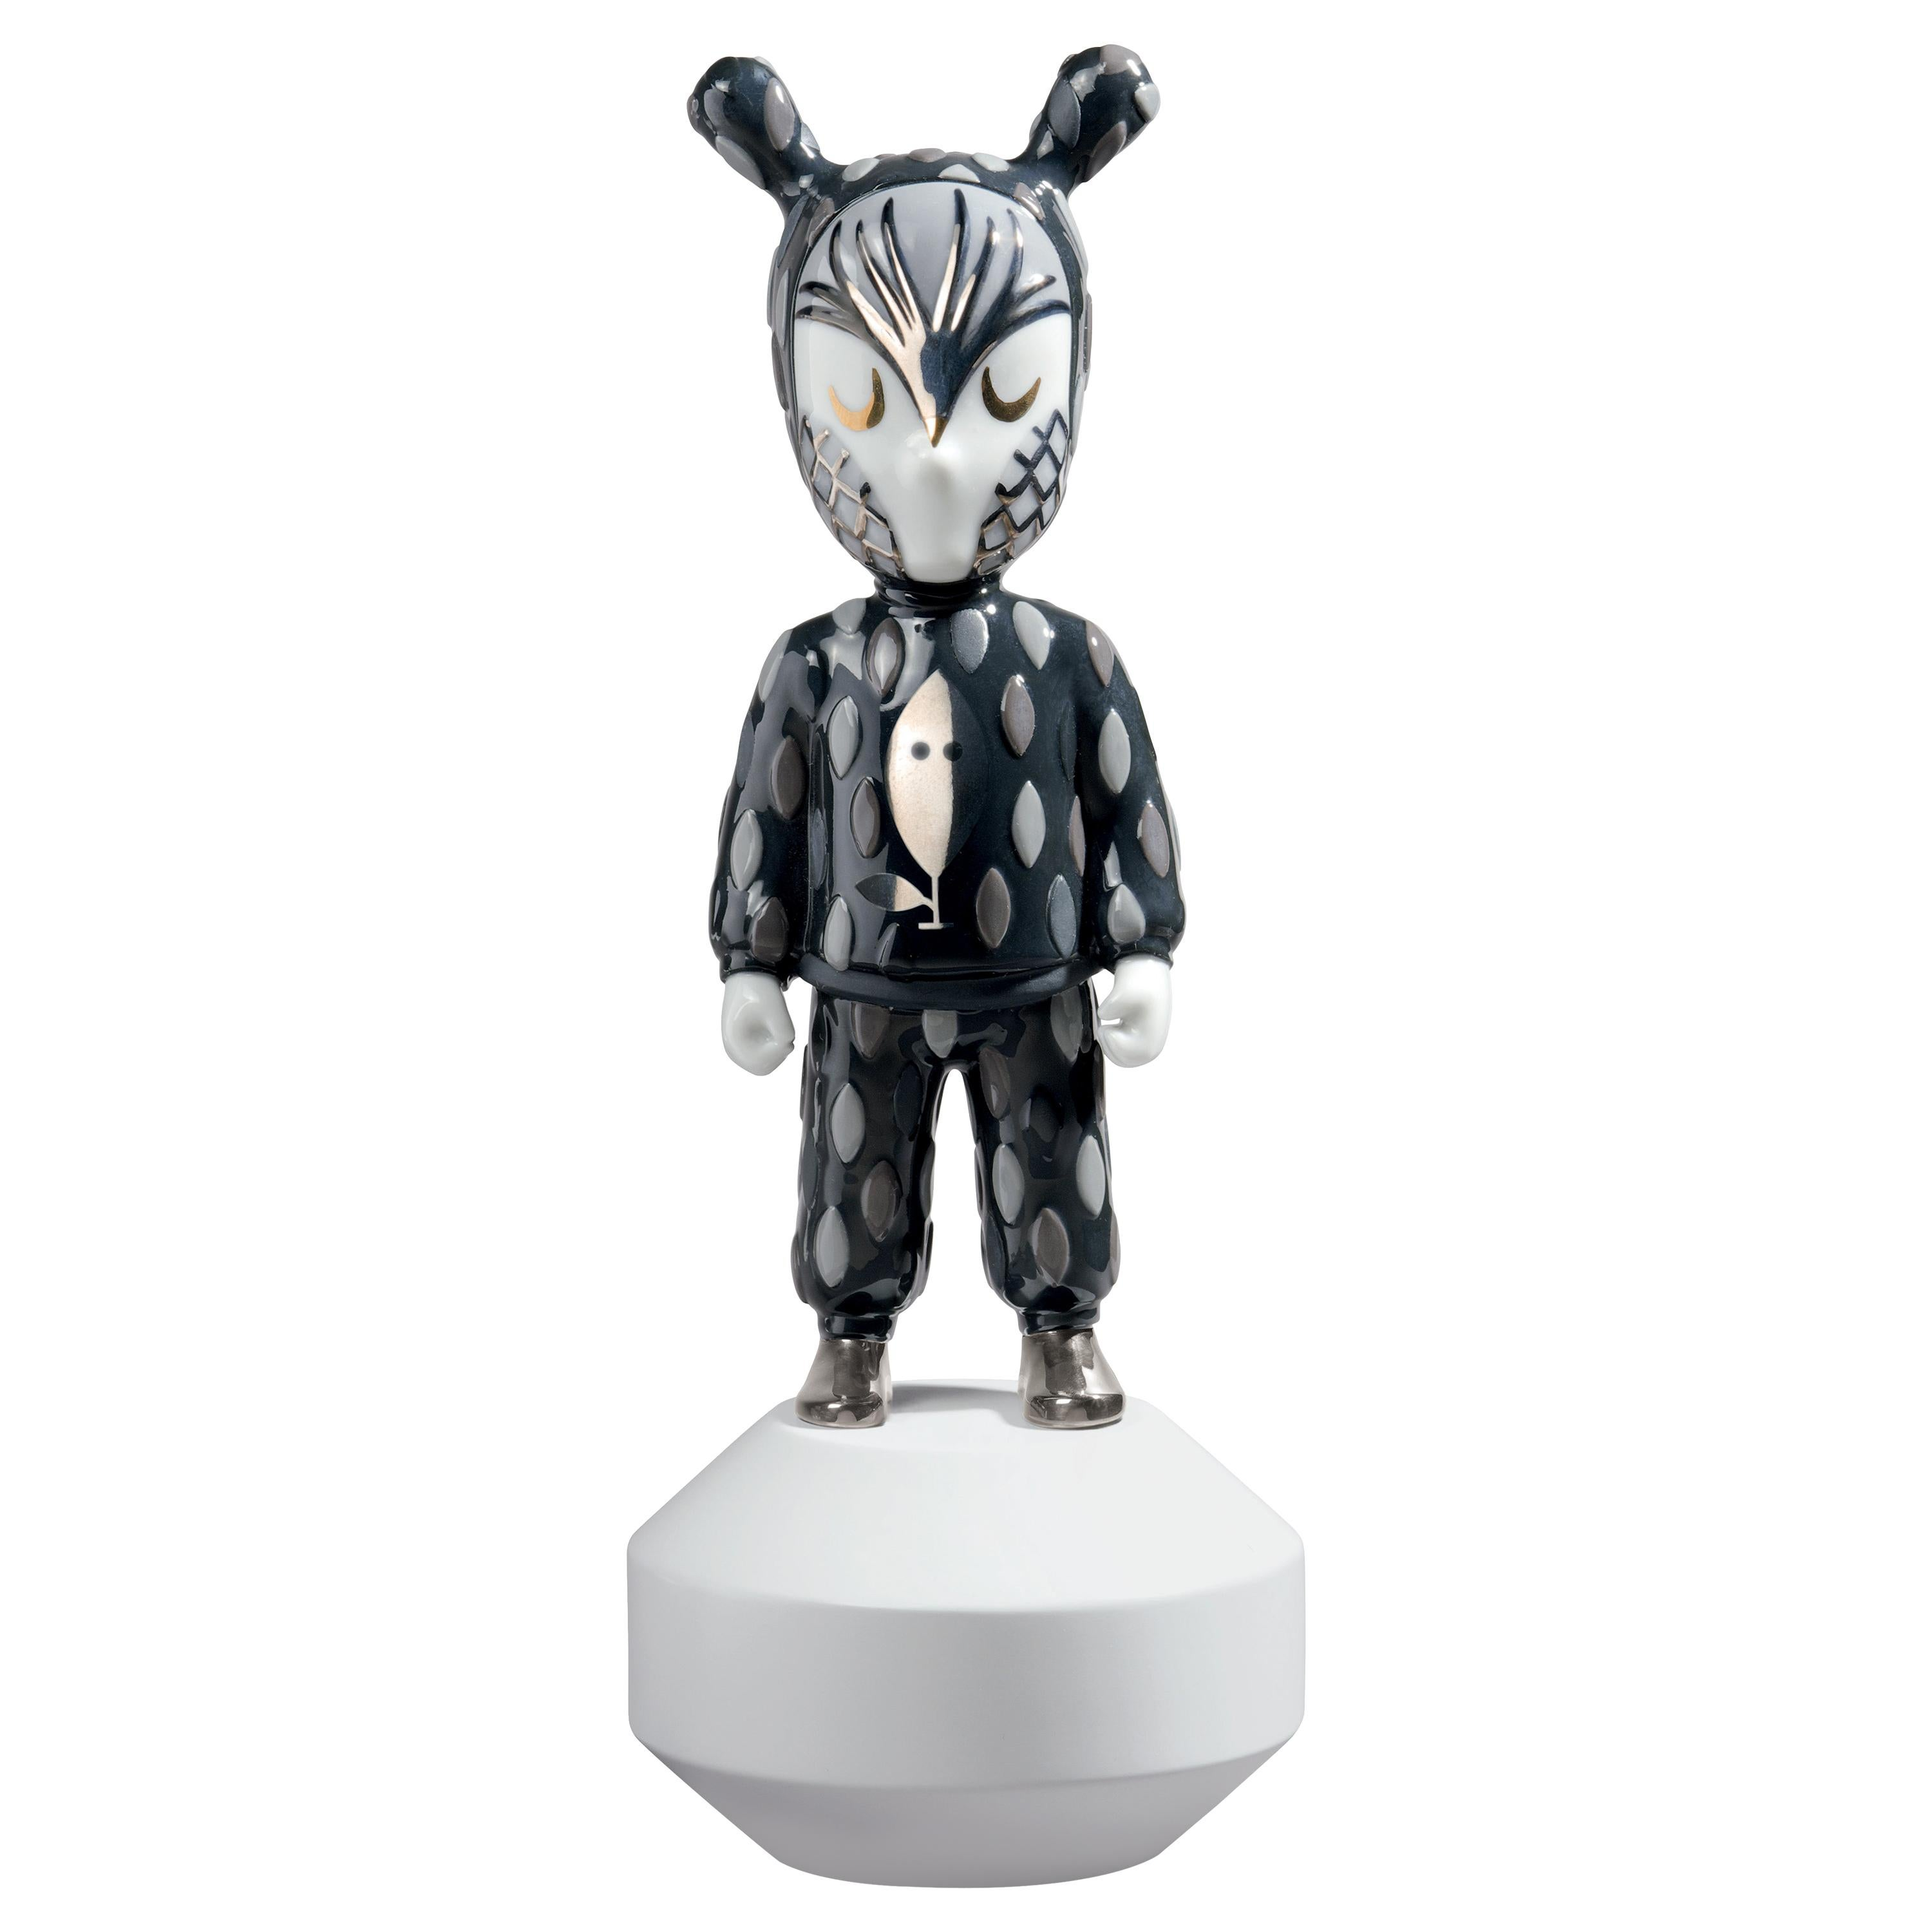 Lladro The Guest Small Figurine by Rolito, Numbered Edition